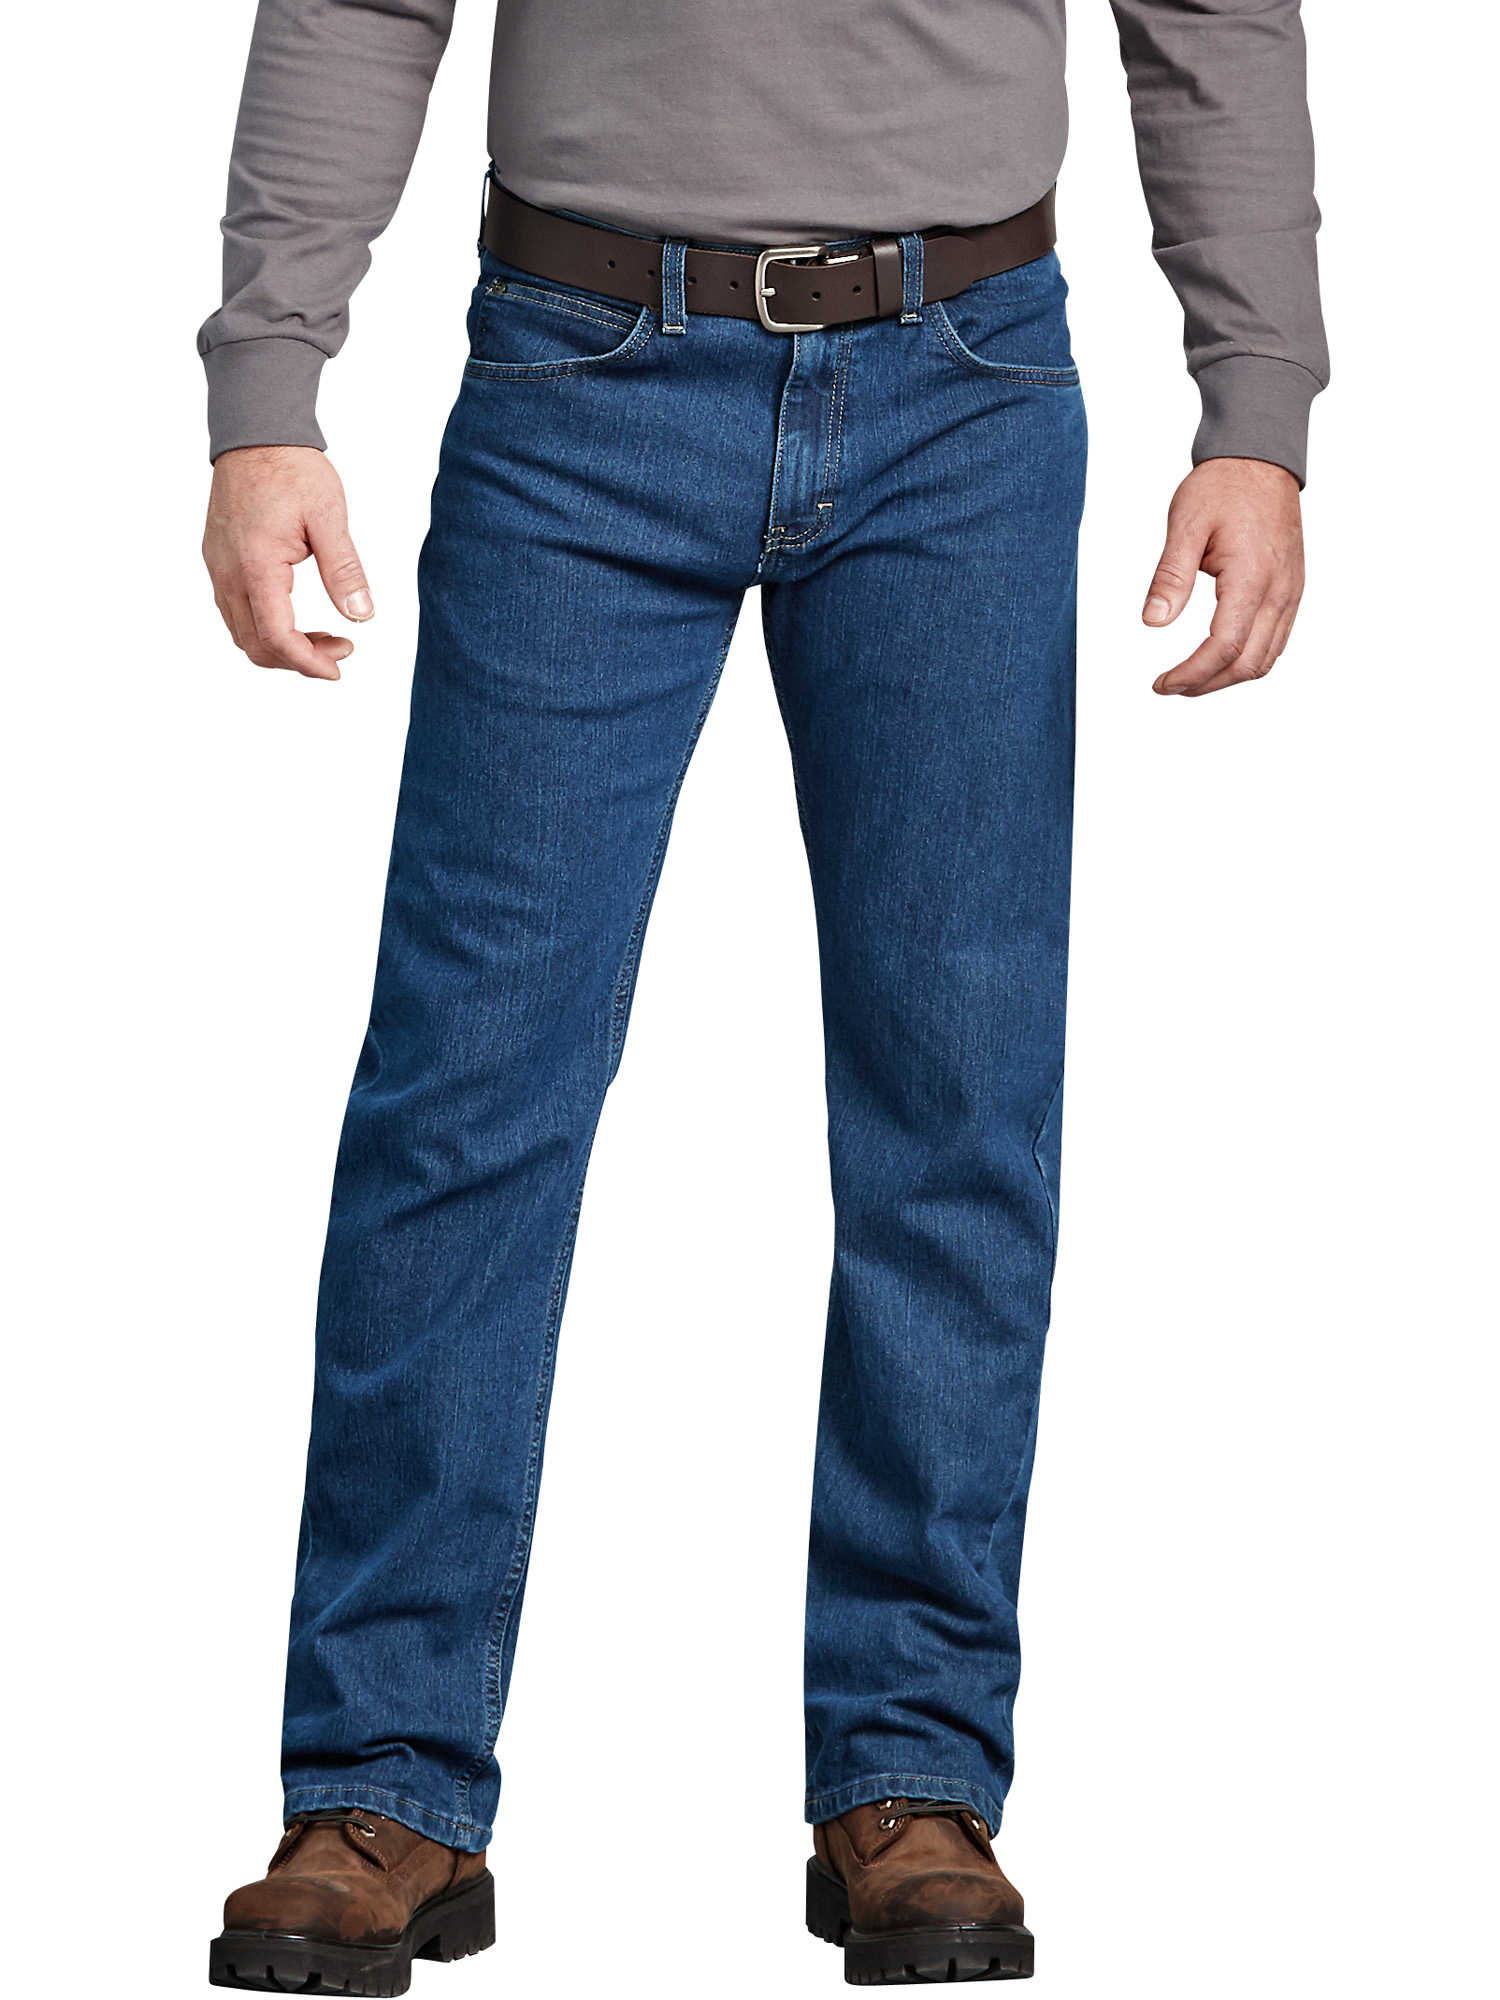 Regular Fit Performance Flex 5 Pocket Jean